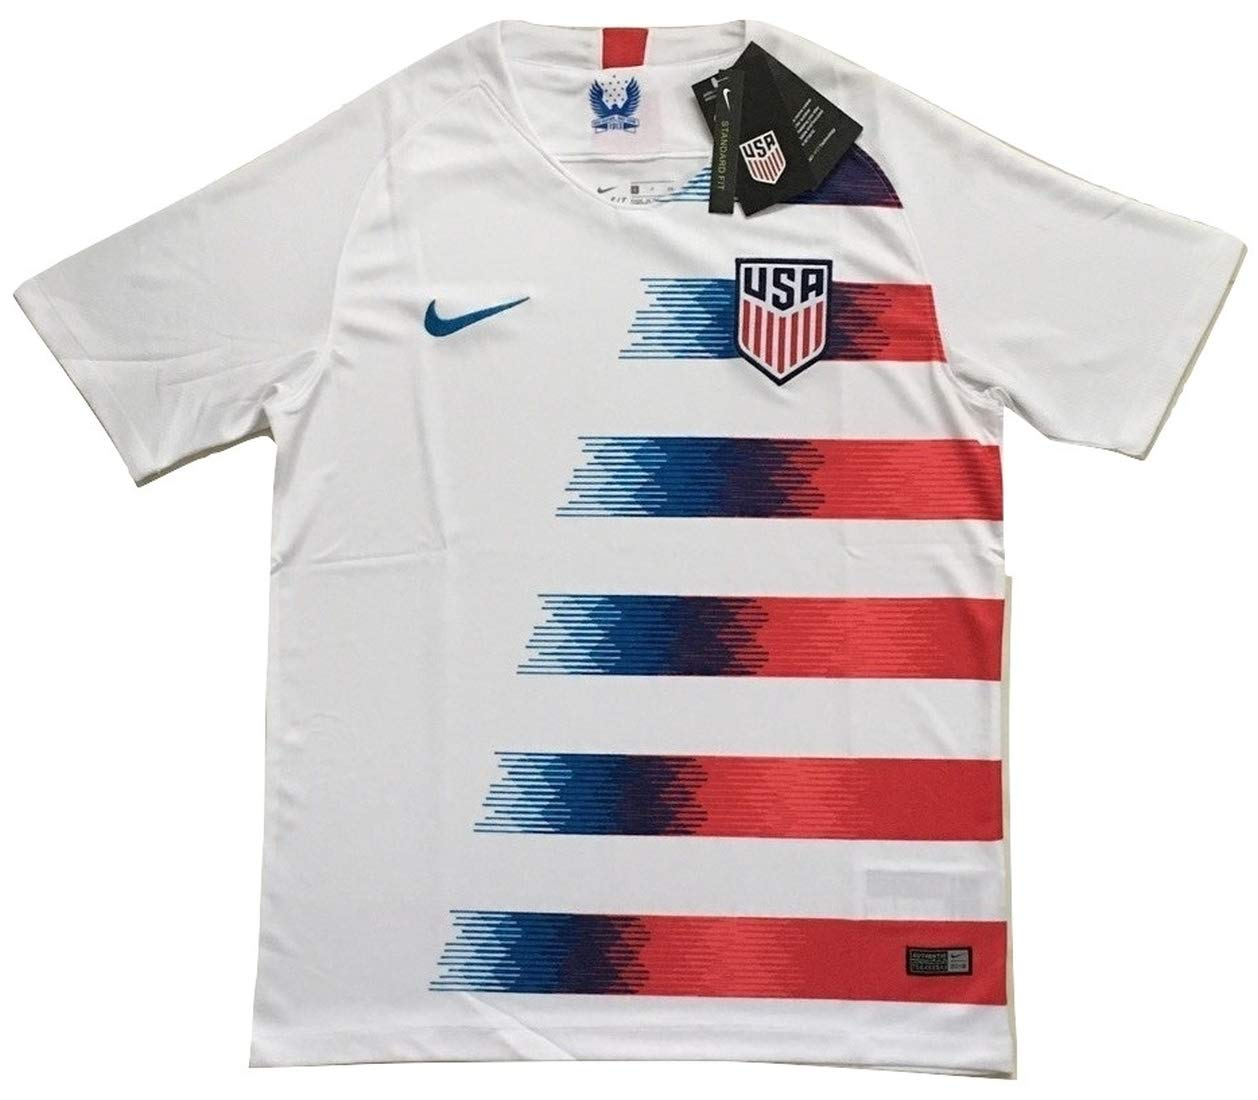 Enevva Men's USA National Team 2018-2019 Home Soccer Jersey White (Men's Large) by Enevva (Image #1)